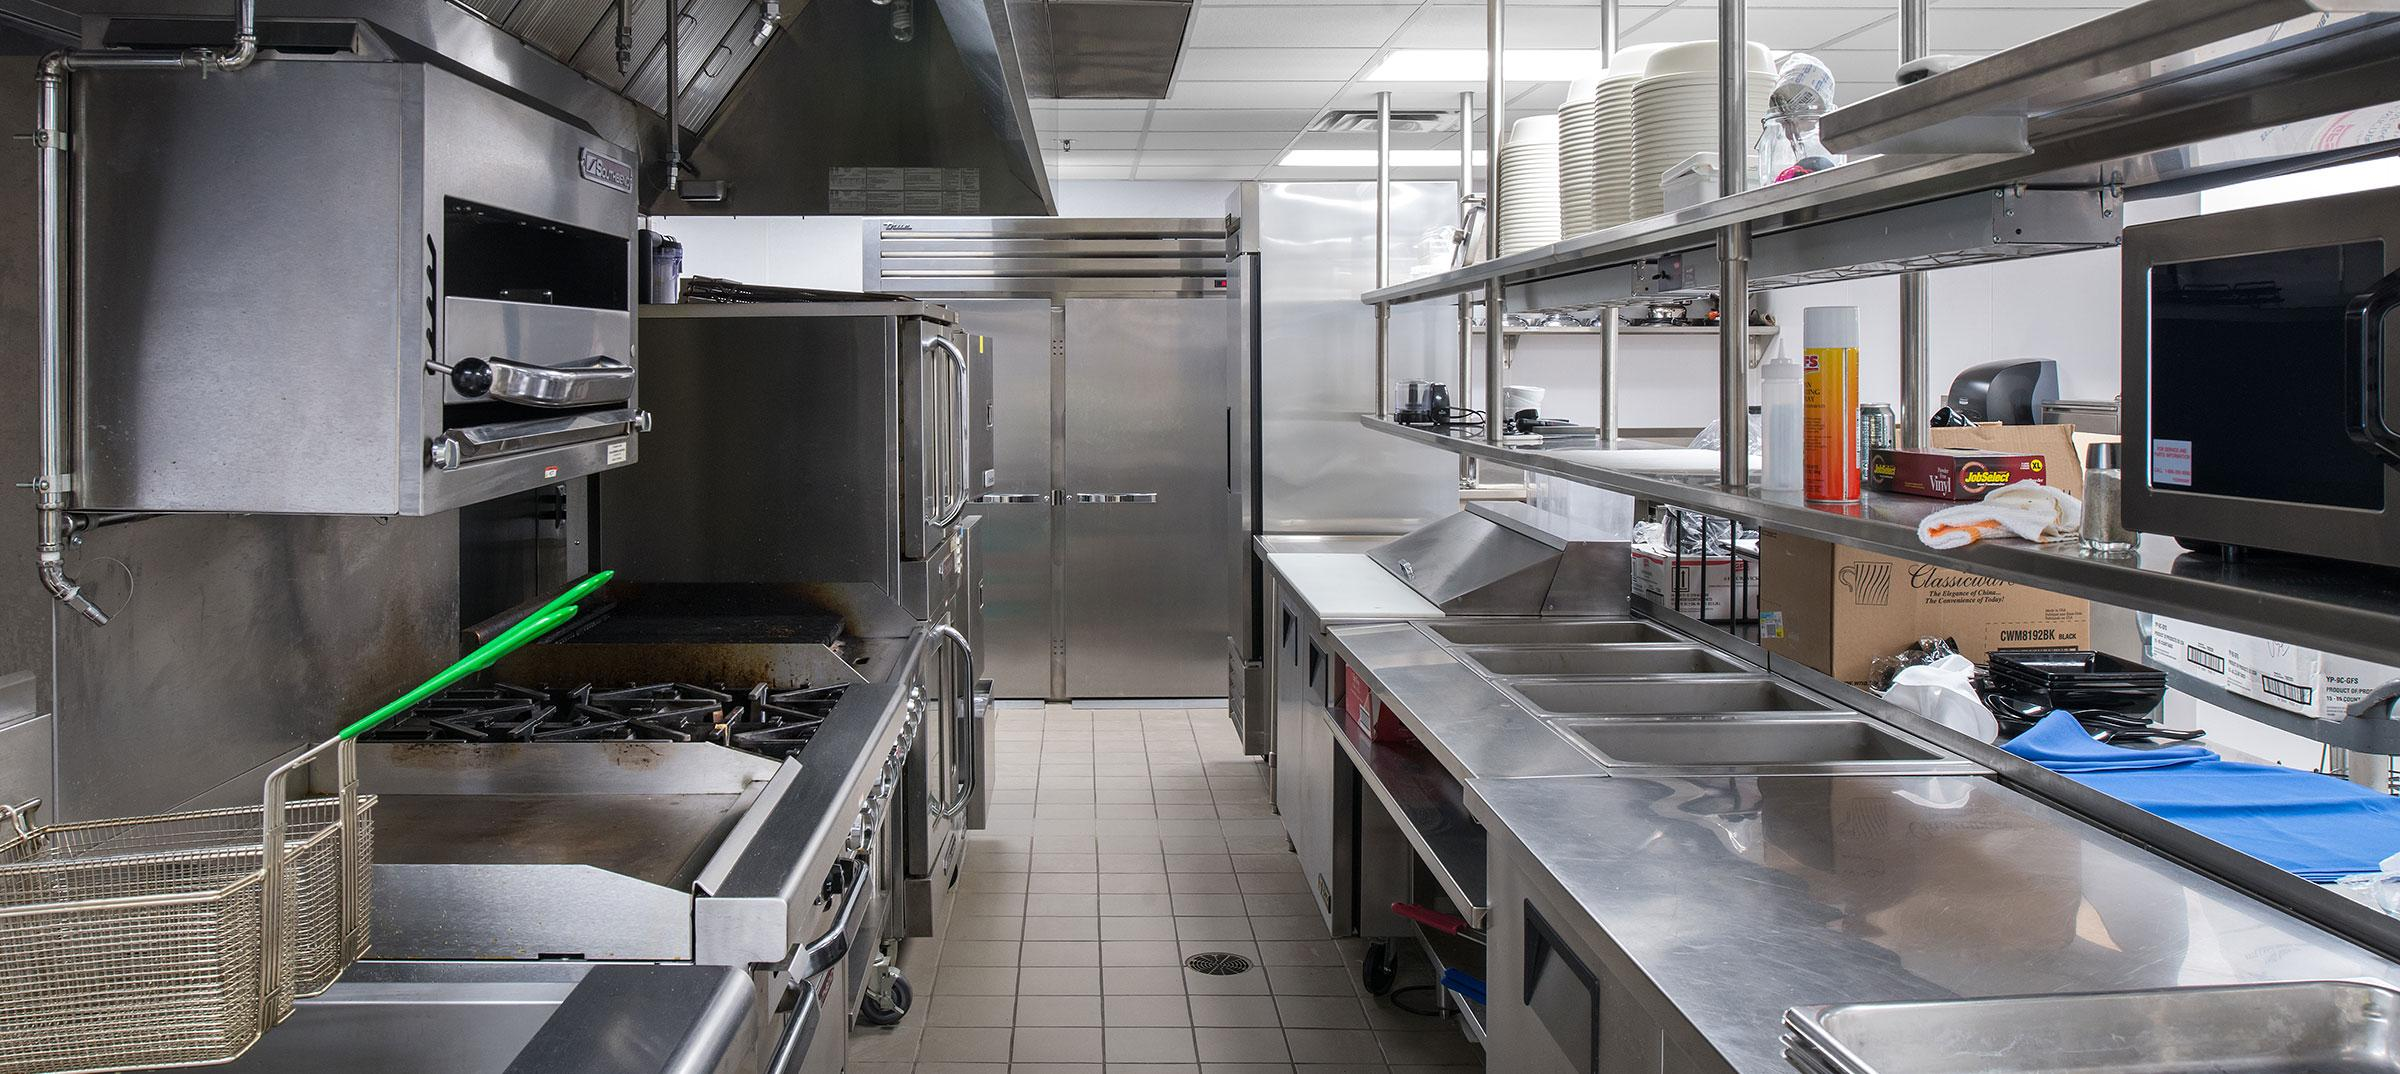 The Neeley Center kitchen